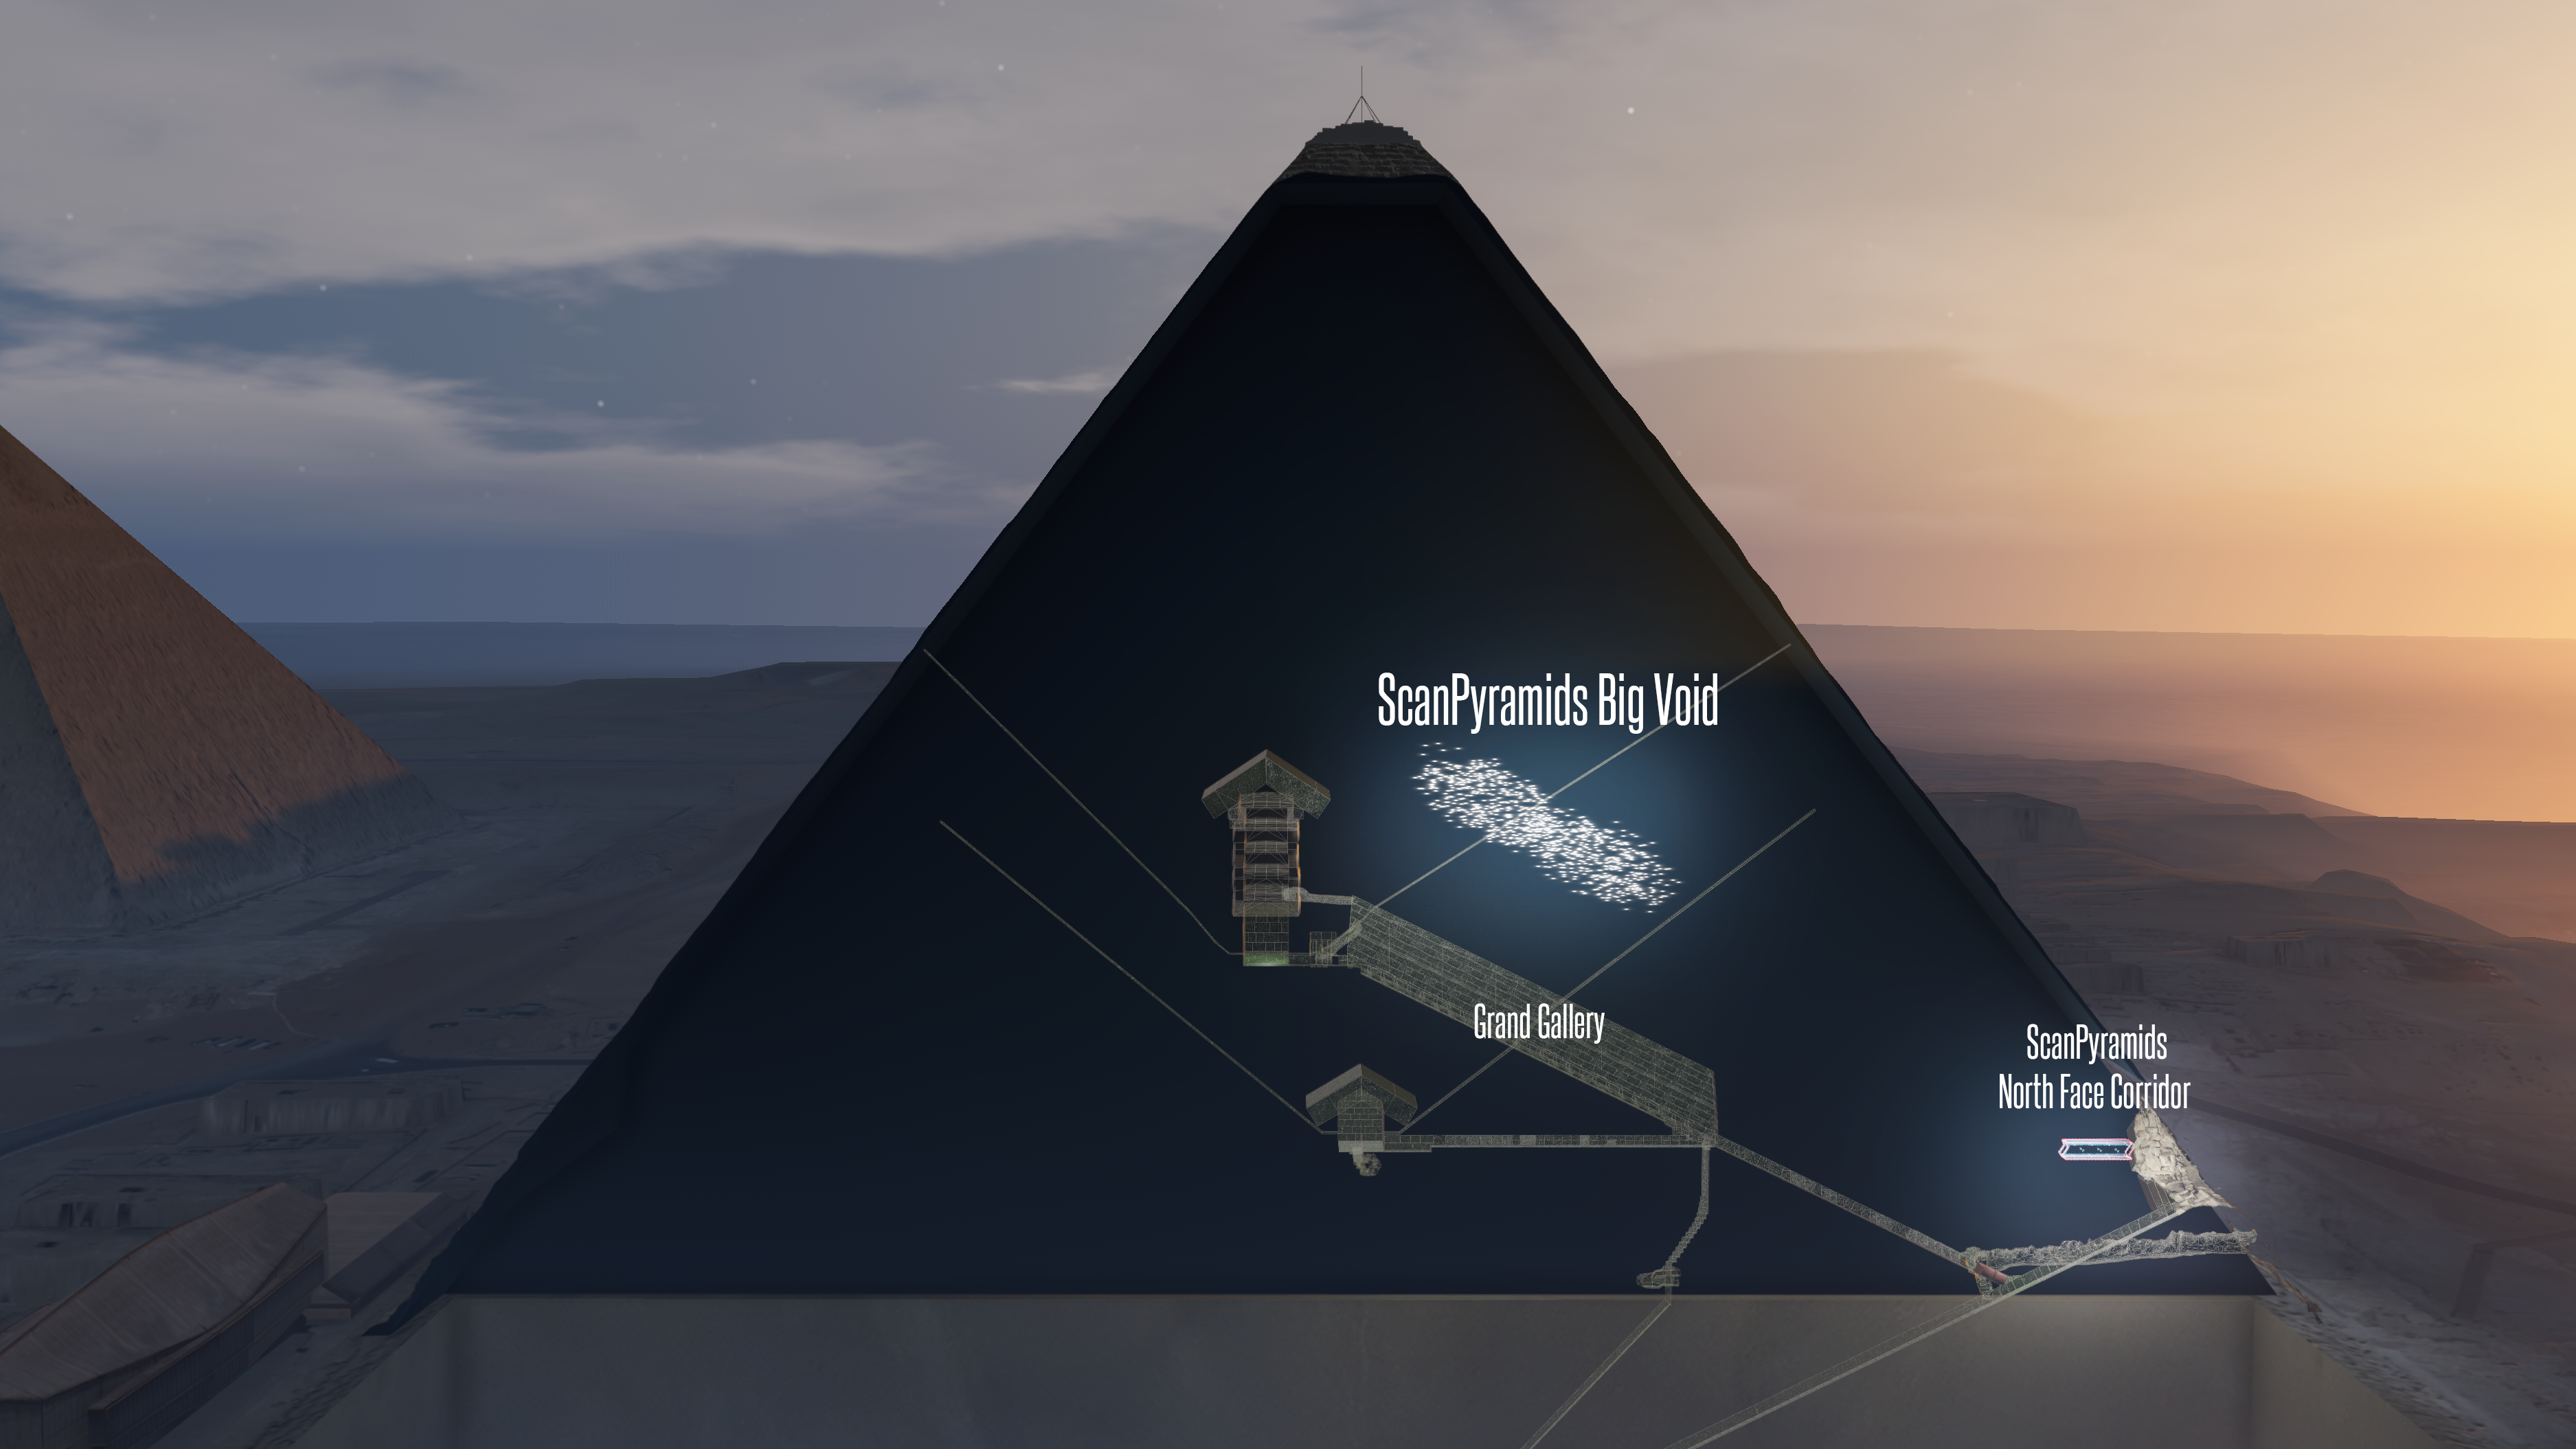 Graphic representation of the known chambers of the pyramid and the newly discovered void.